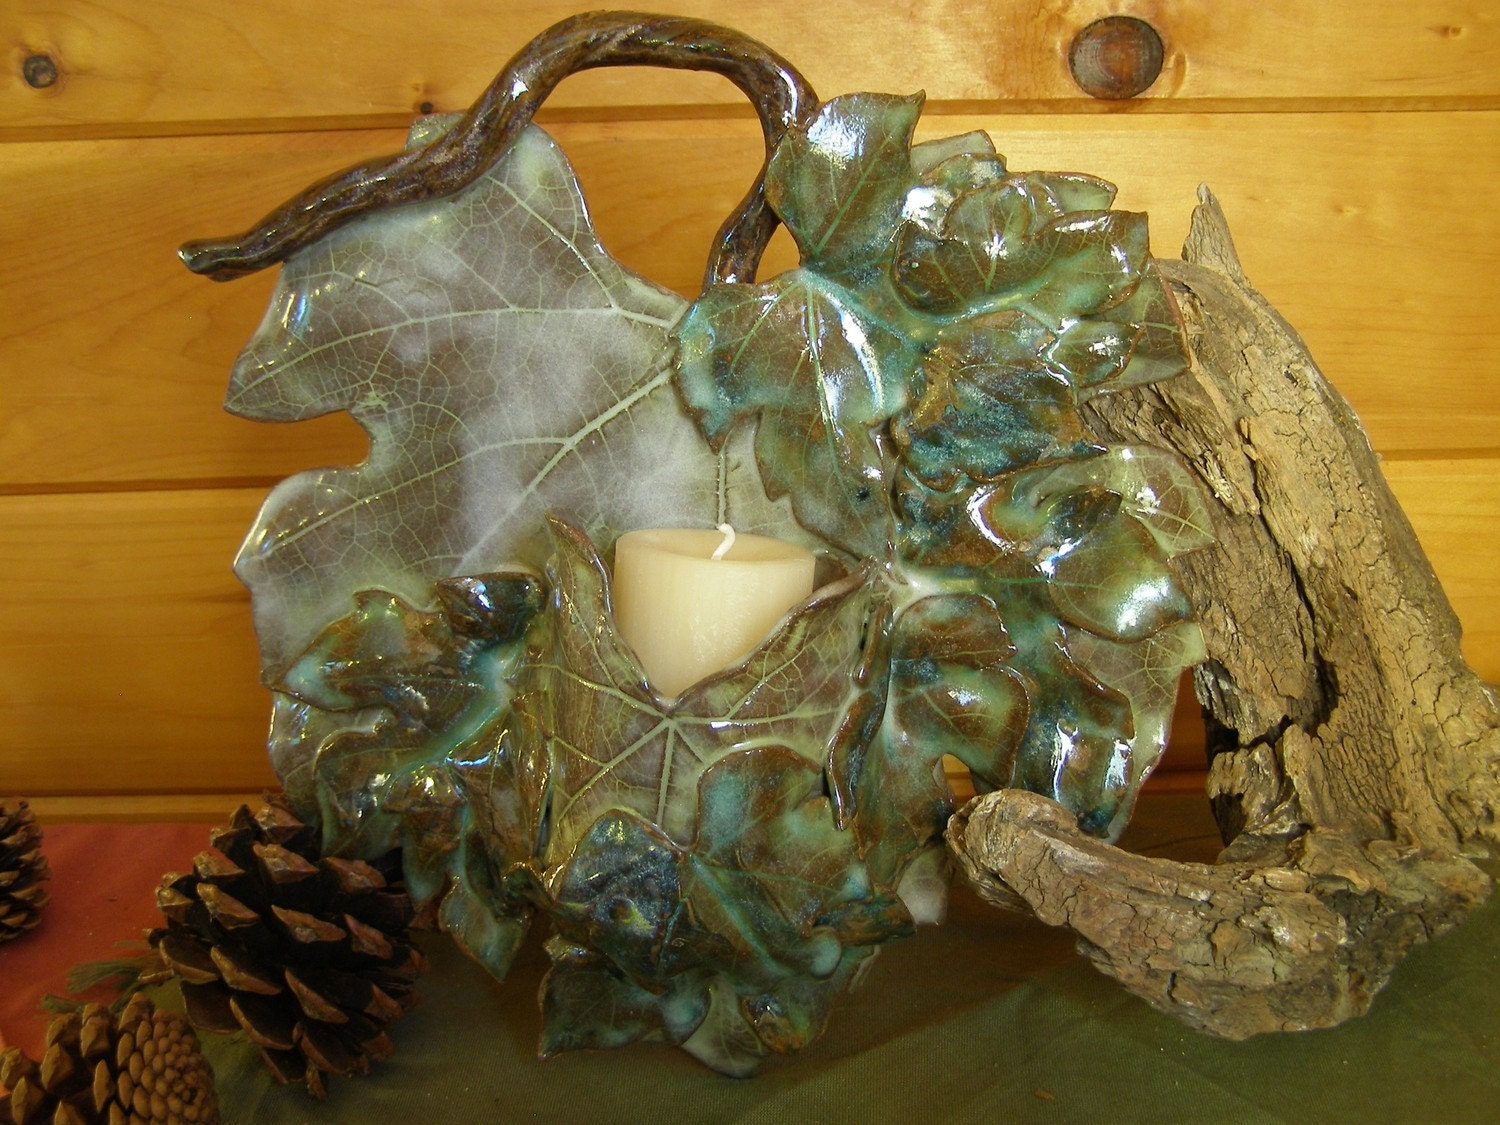 Warm Coffee Brown and Shades of Turquoise Grape Leaves Candle Wall Sconce